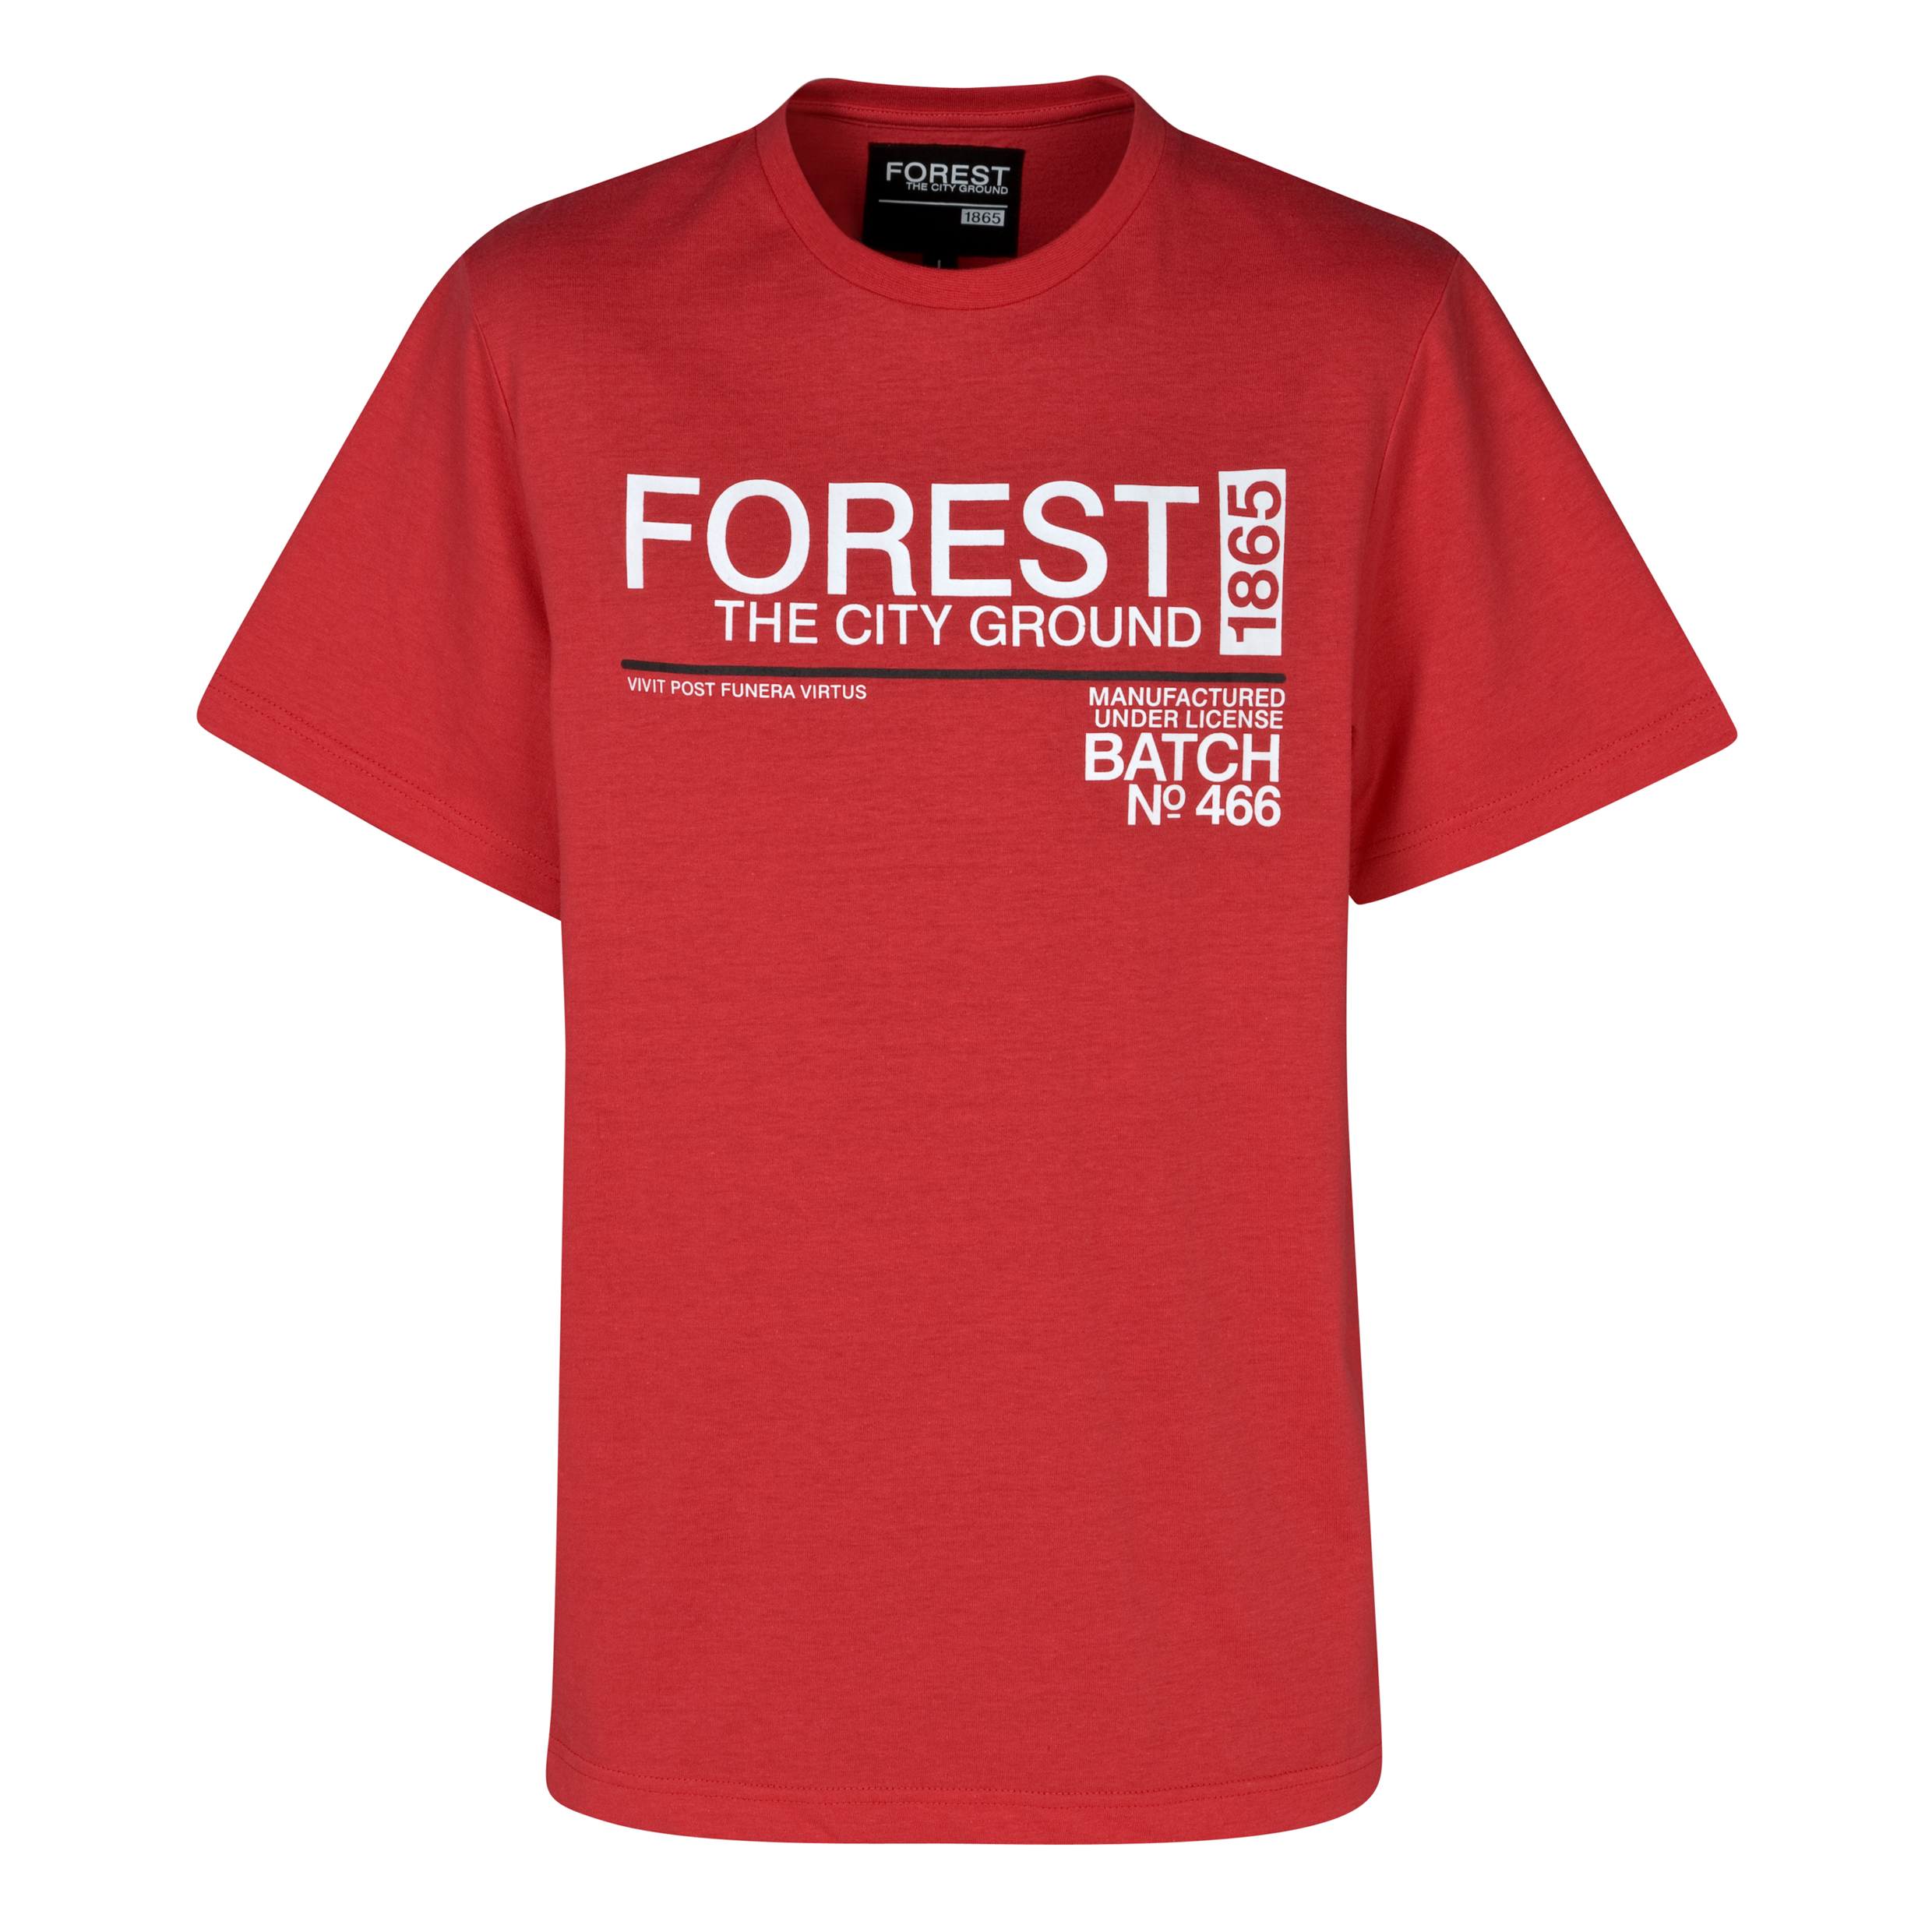 Nottingham Forest Group T-Shirt - True Red